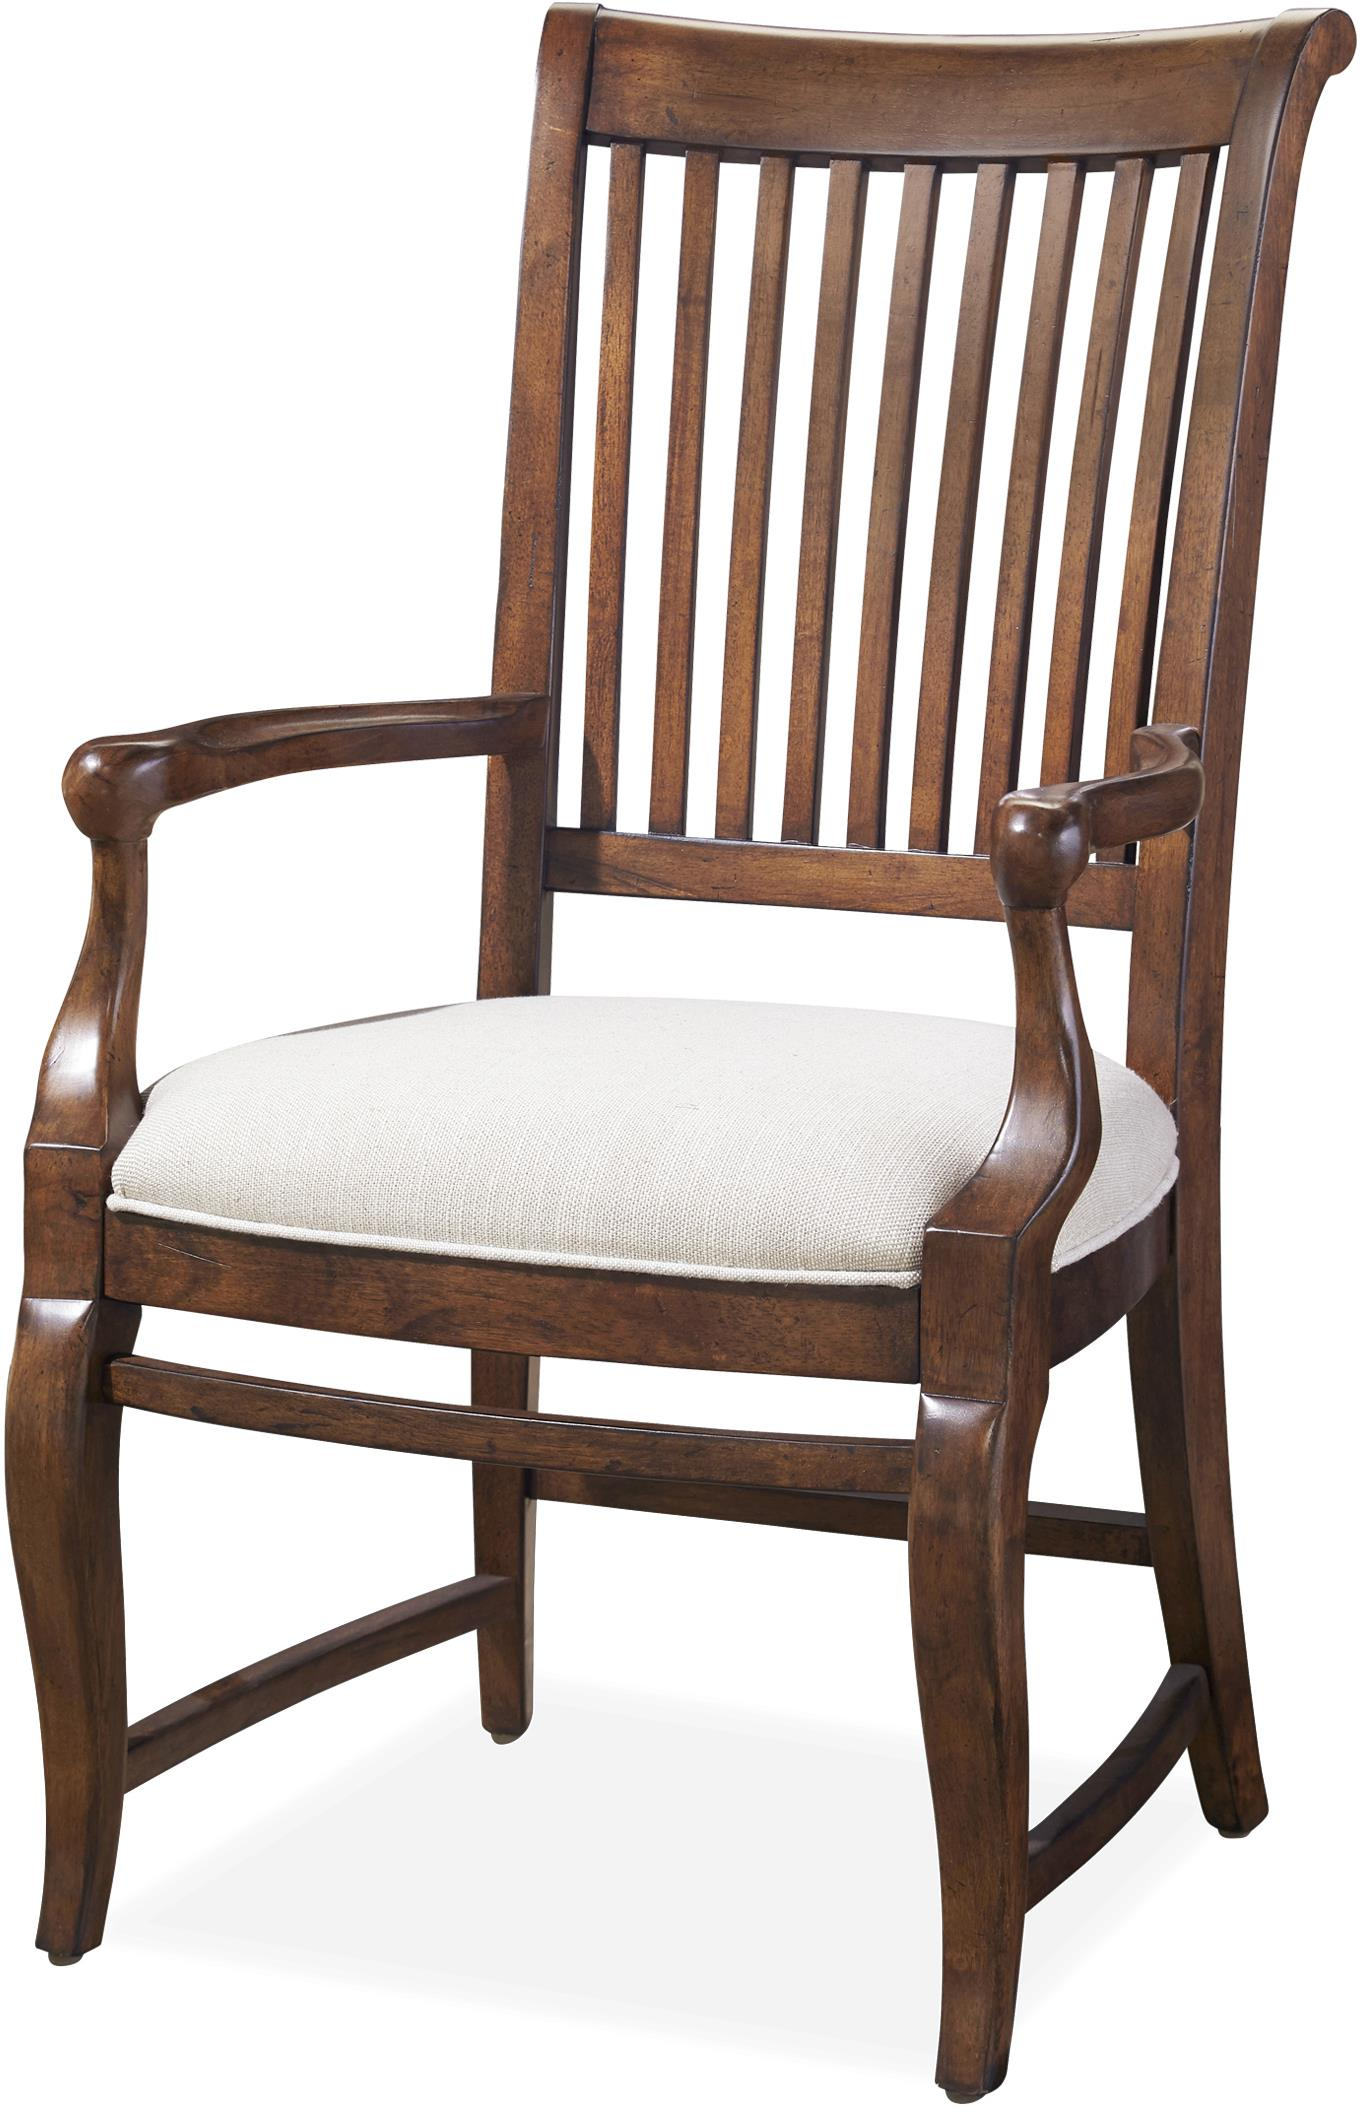 Paula Deen by Universal Dogwood Dogwood Arm Chair - Item Number: 596635-RTA